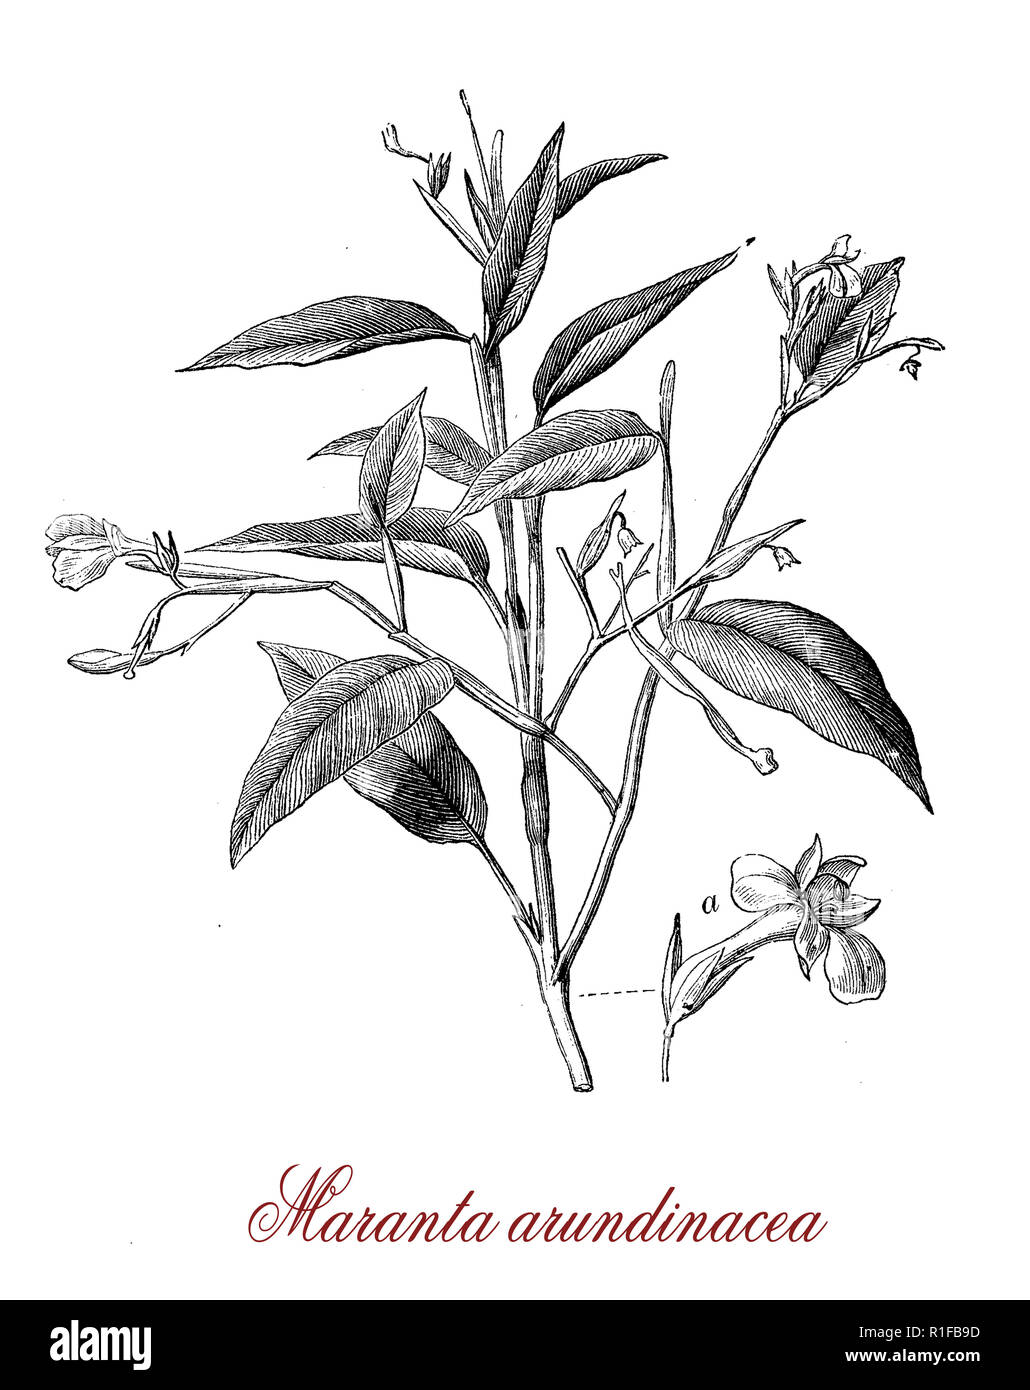 Vintage botanical engraving of Maranta arundinacea or arrowroot,edible and ornamental plant from rainforest of South America - Stock Image